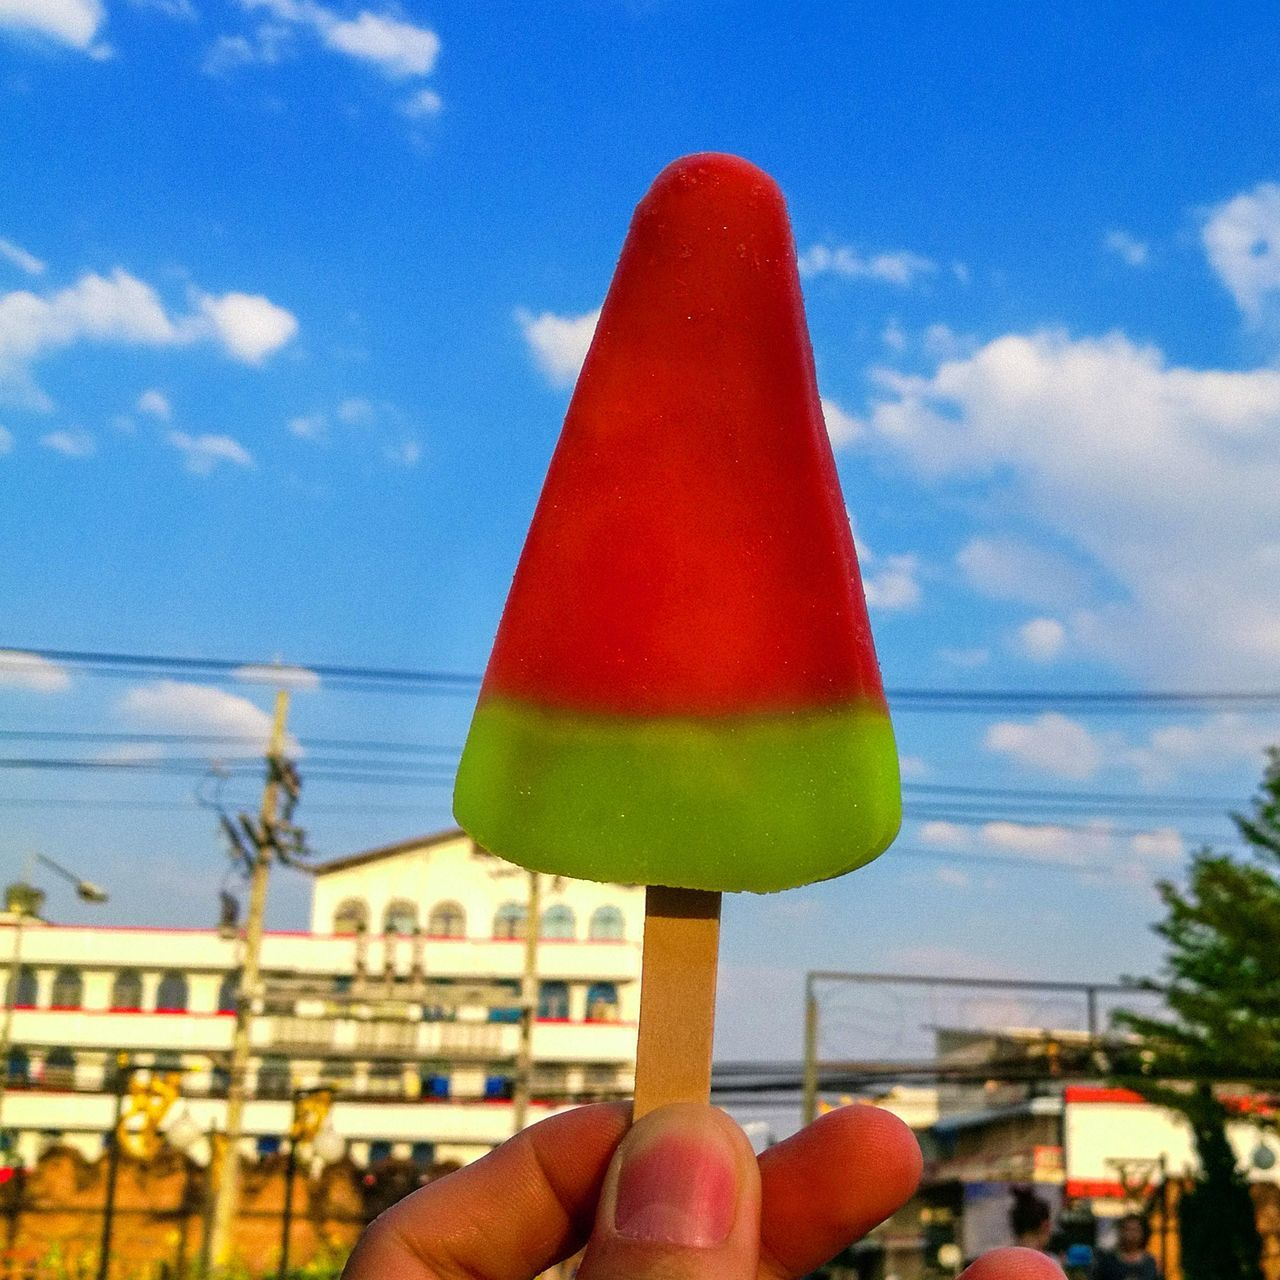 human hand, human body part, sky, human finger, personal perspective, cloud - sky, holding, one person, unrecognizable person, day, outdoors, real people, close-up, red, frozen food, ice cream, flavored ice, people